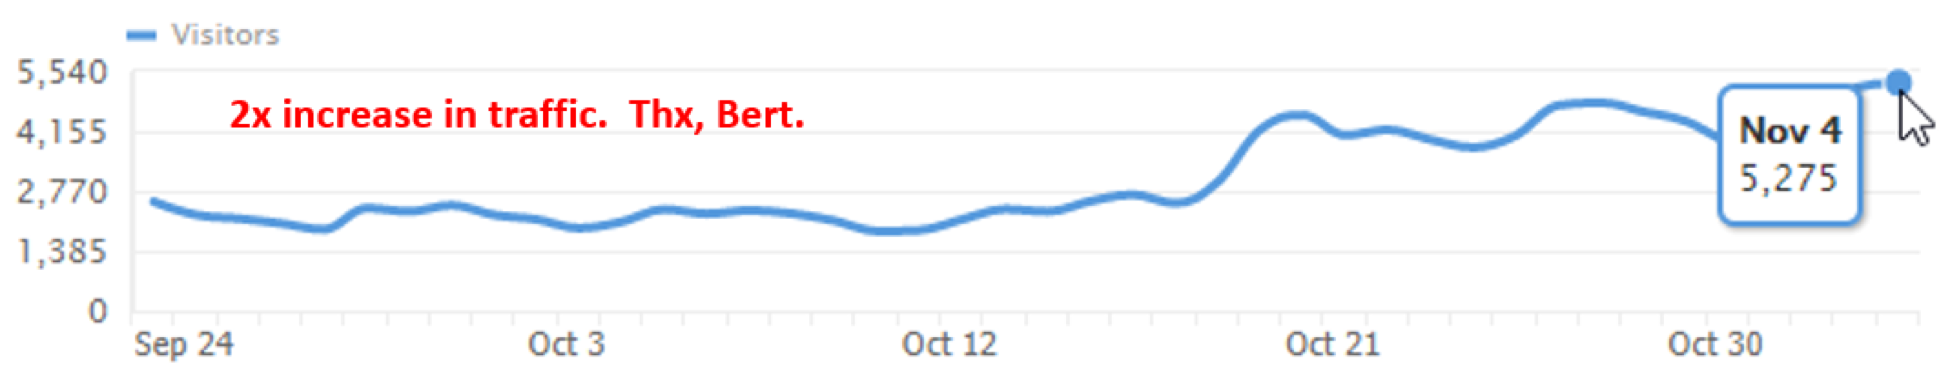 2x increase traffic thanks BERT